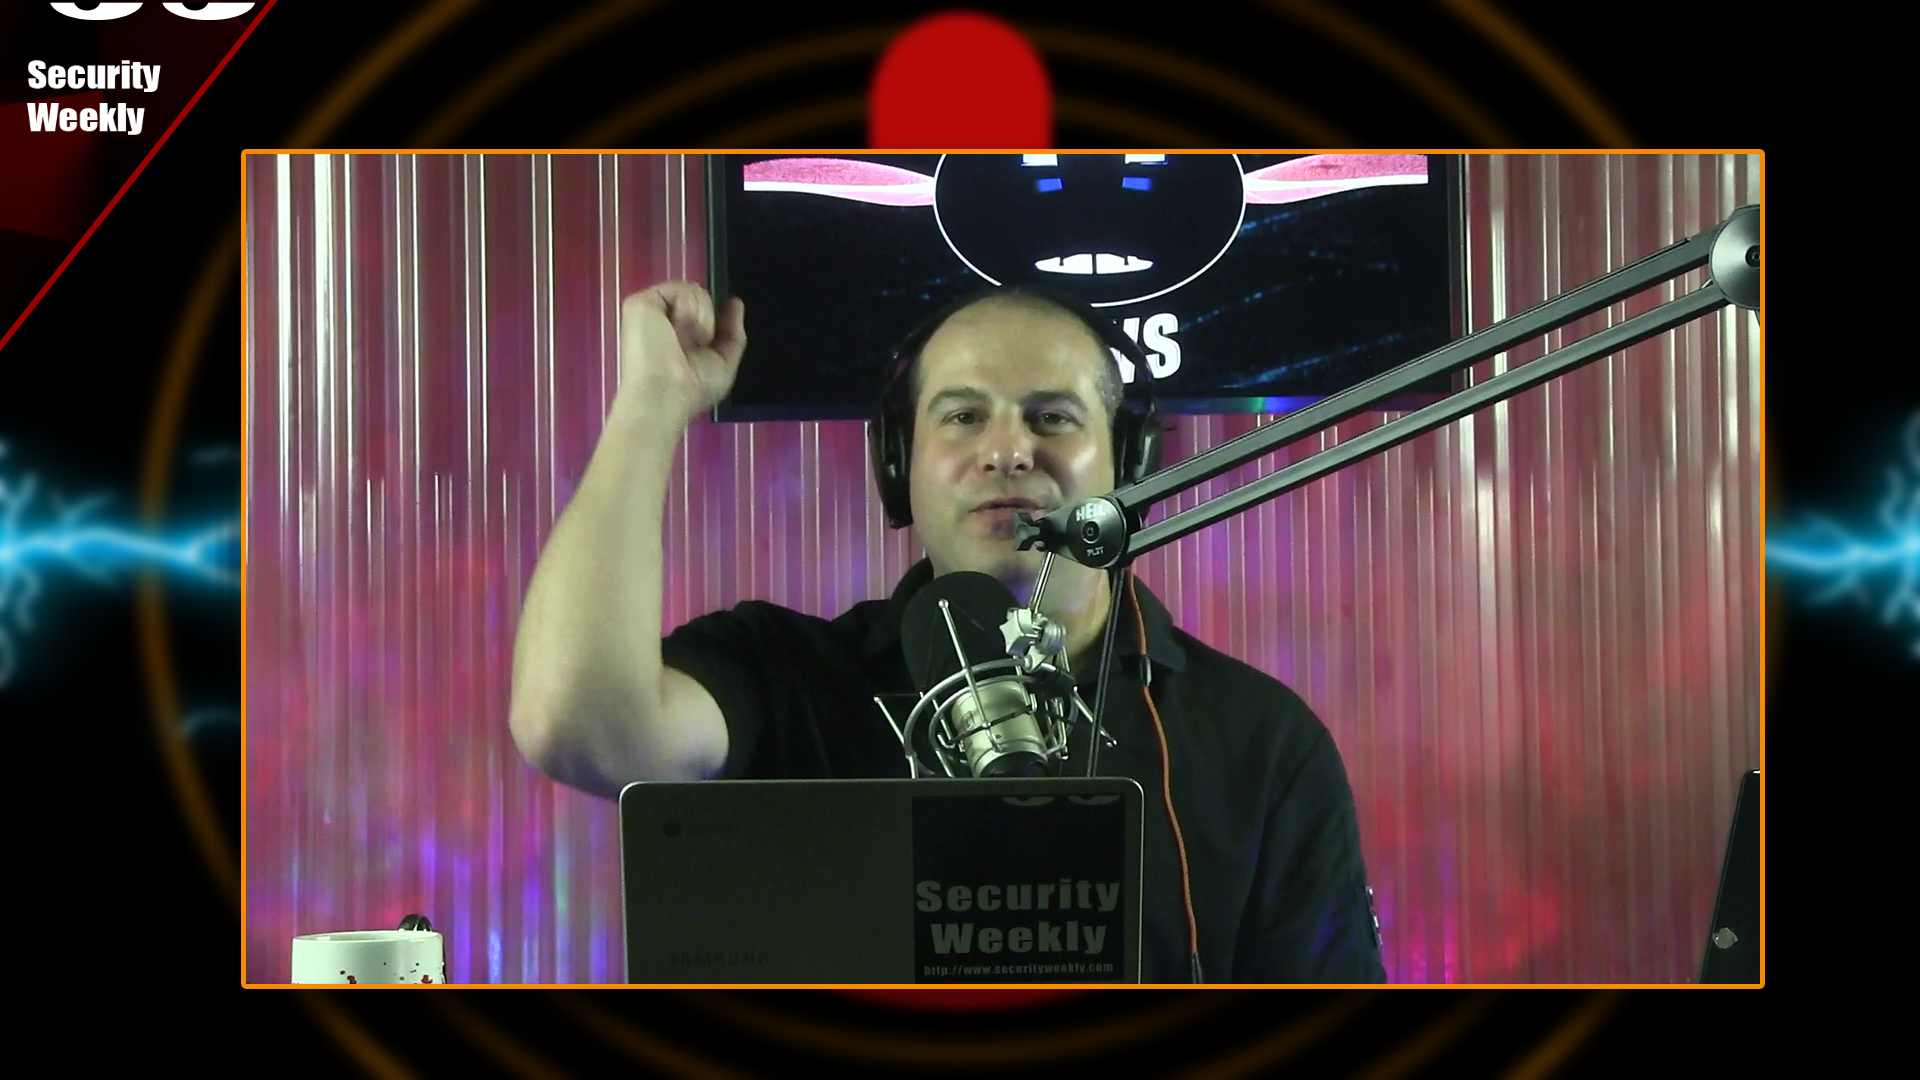 Artwork for News - Startup Security Weekly #42